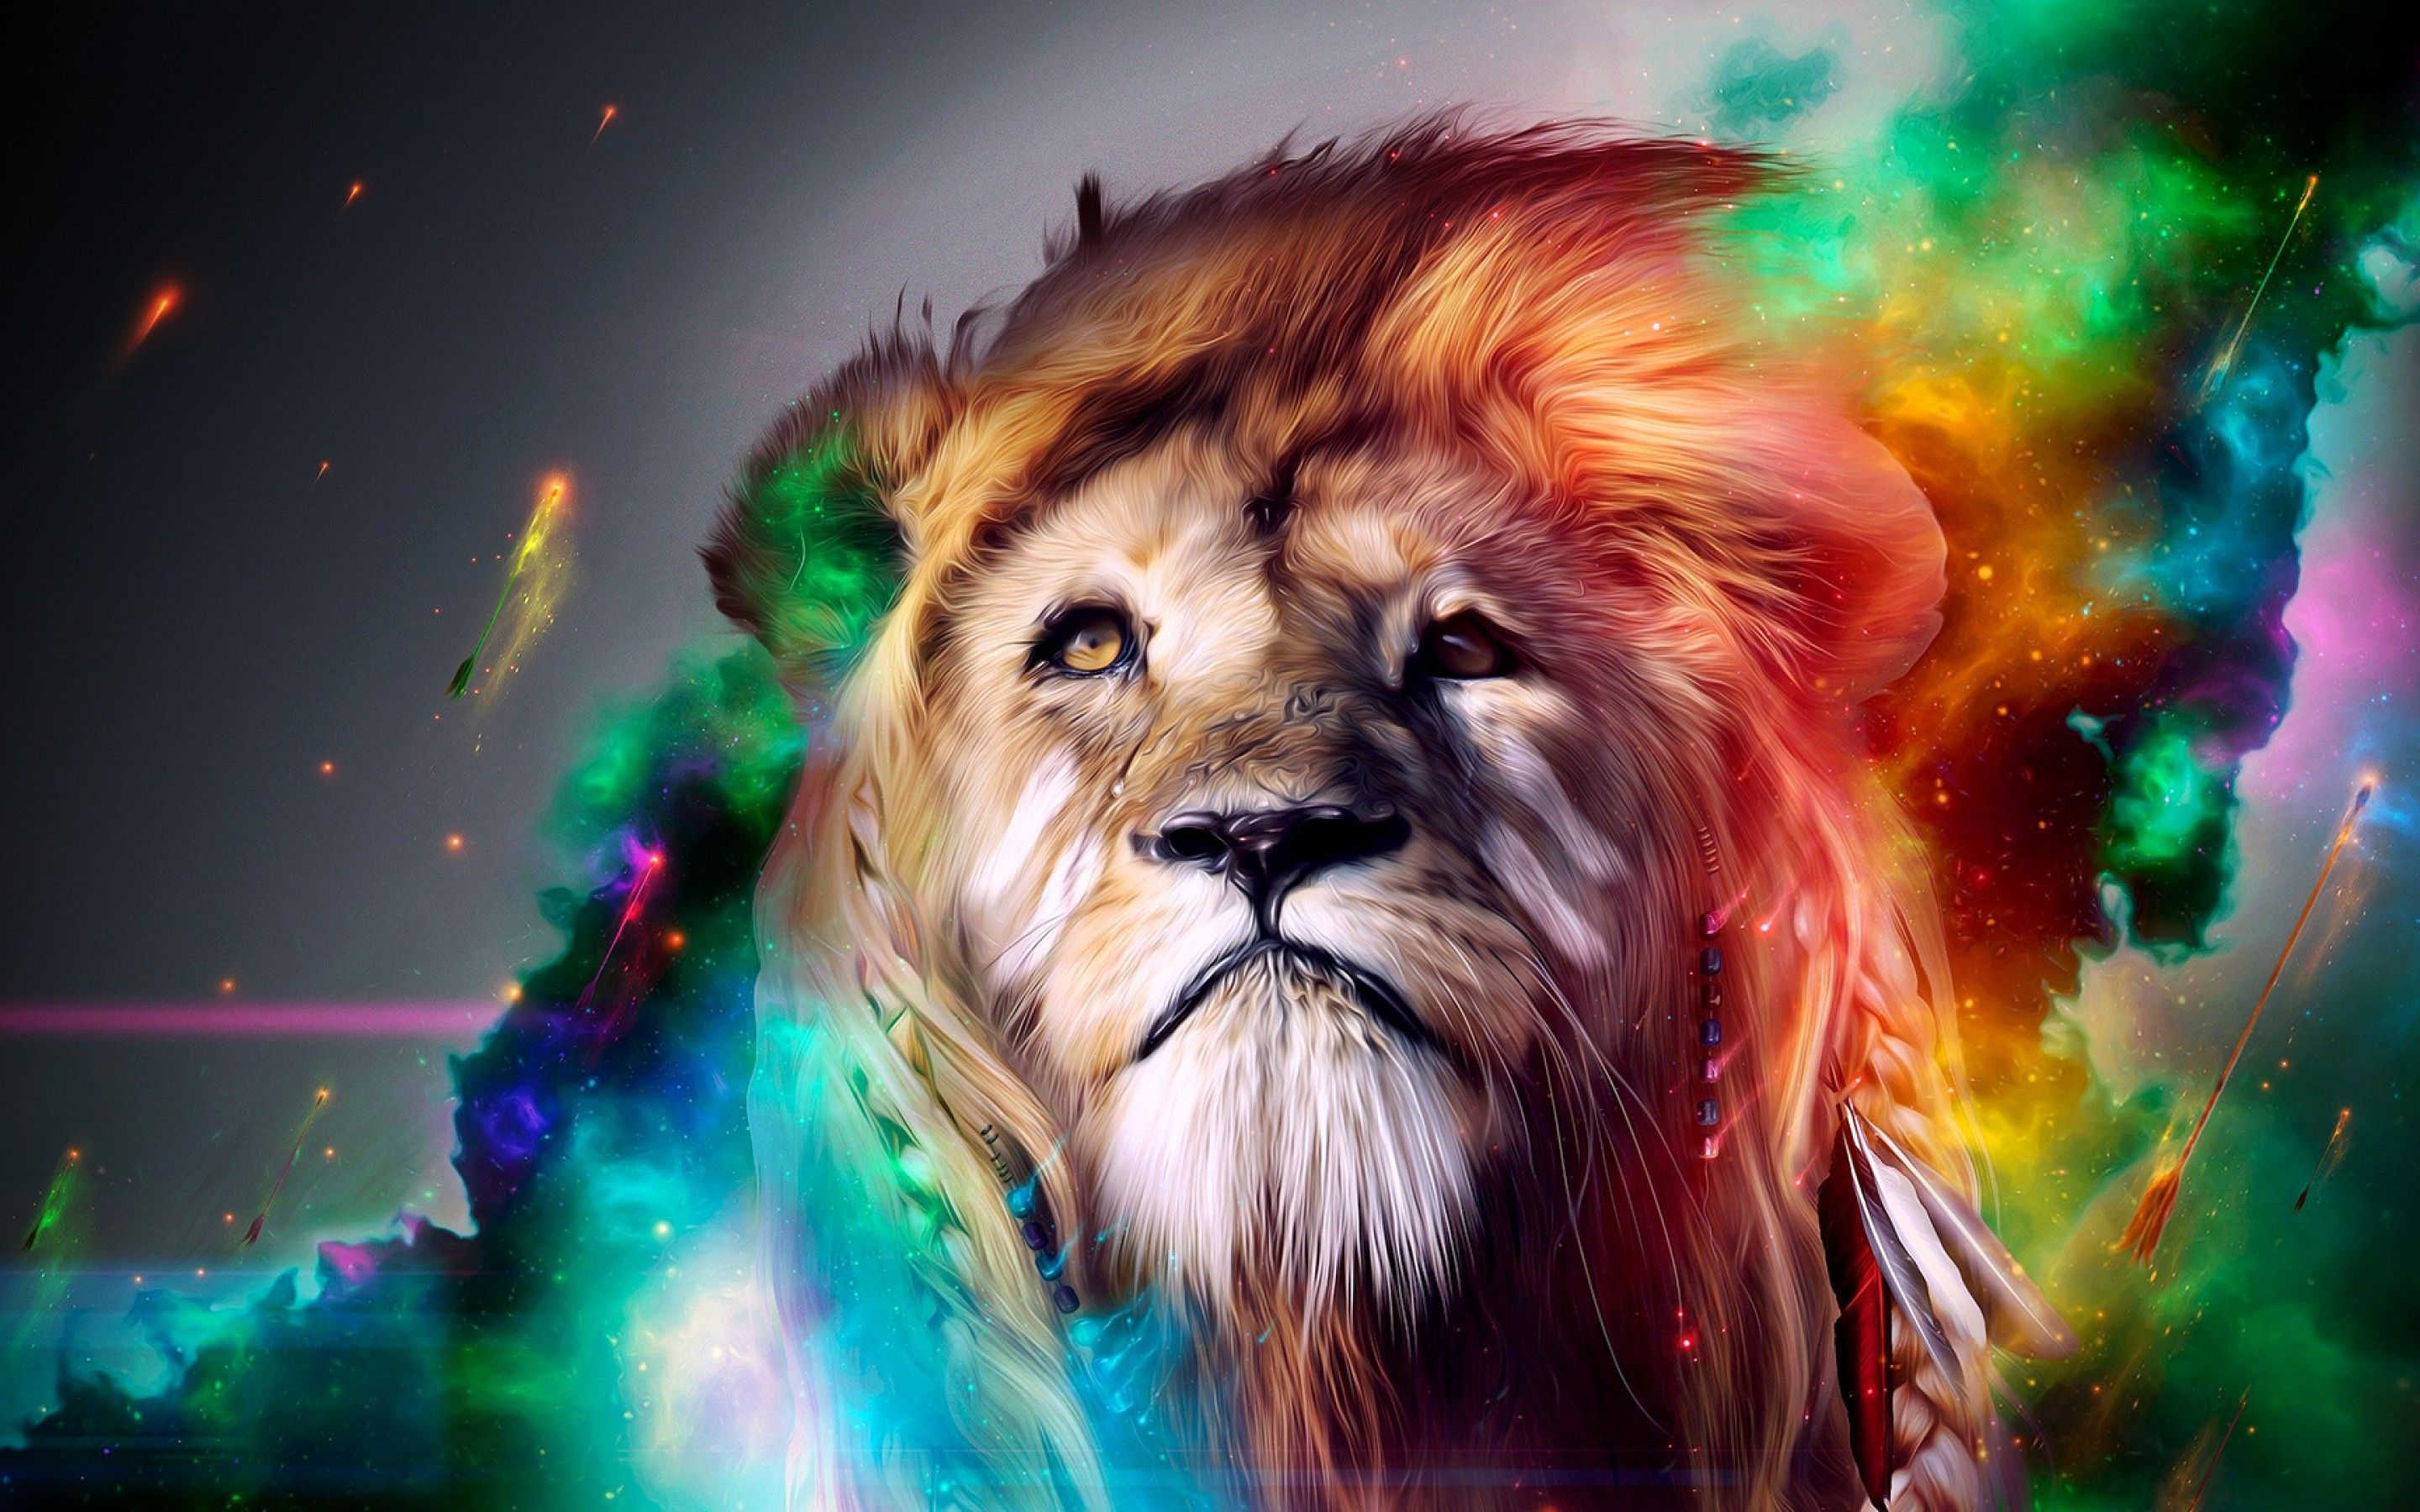 Lion 3d Graphics Hd Desktop Wallpaper Abstract Lion Lion Wallpaper Lion Hd Wallpaper